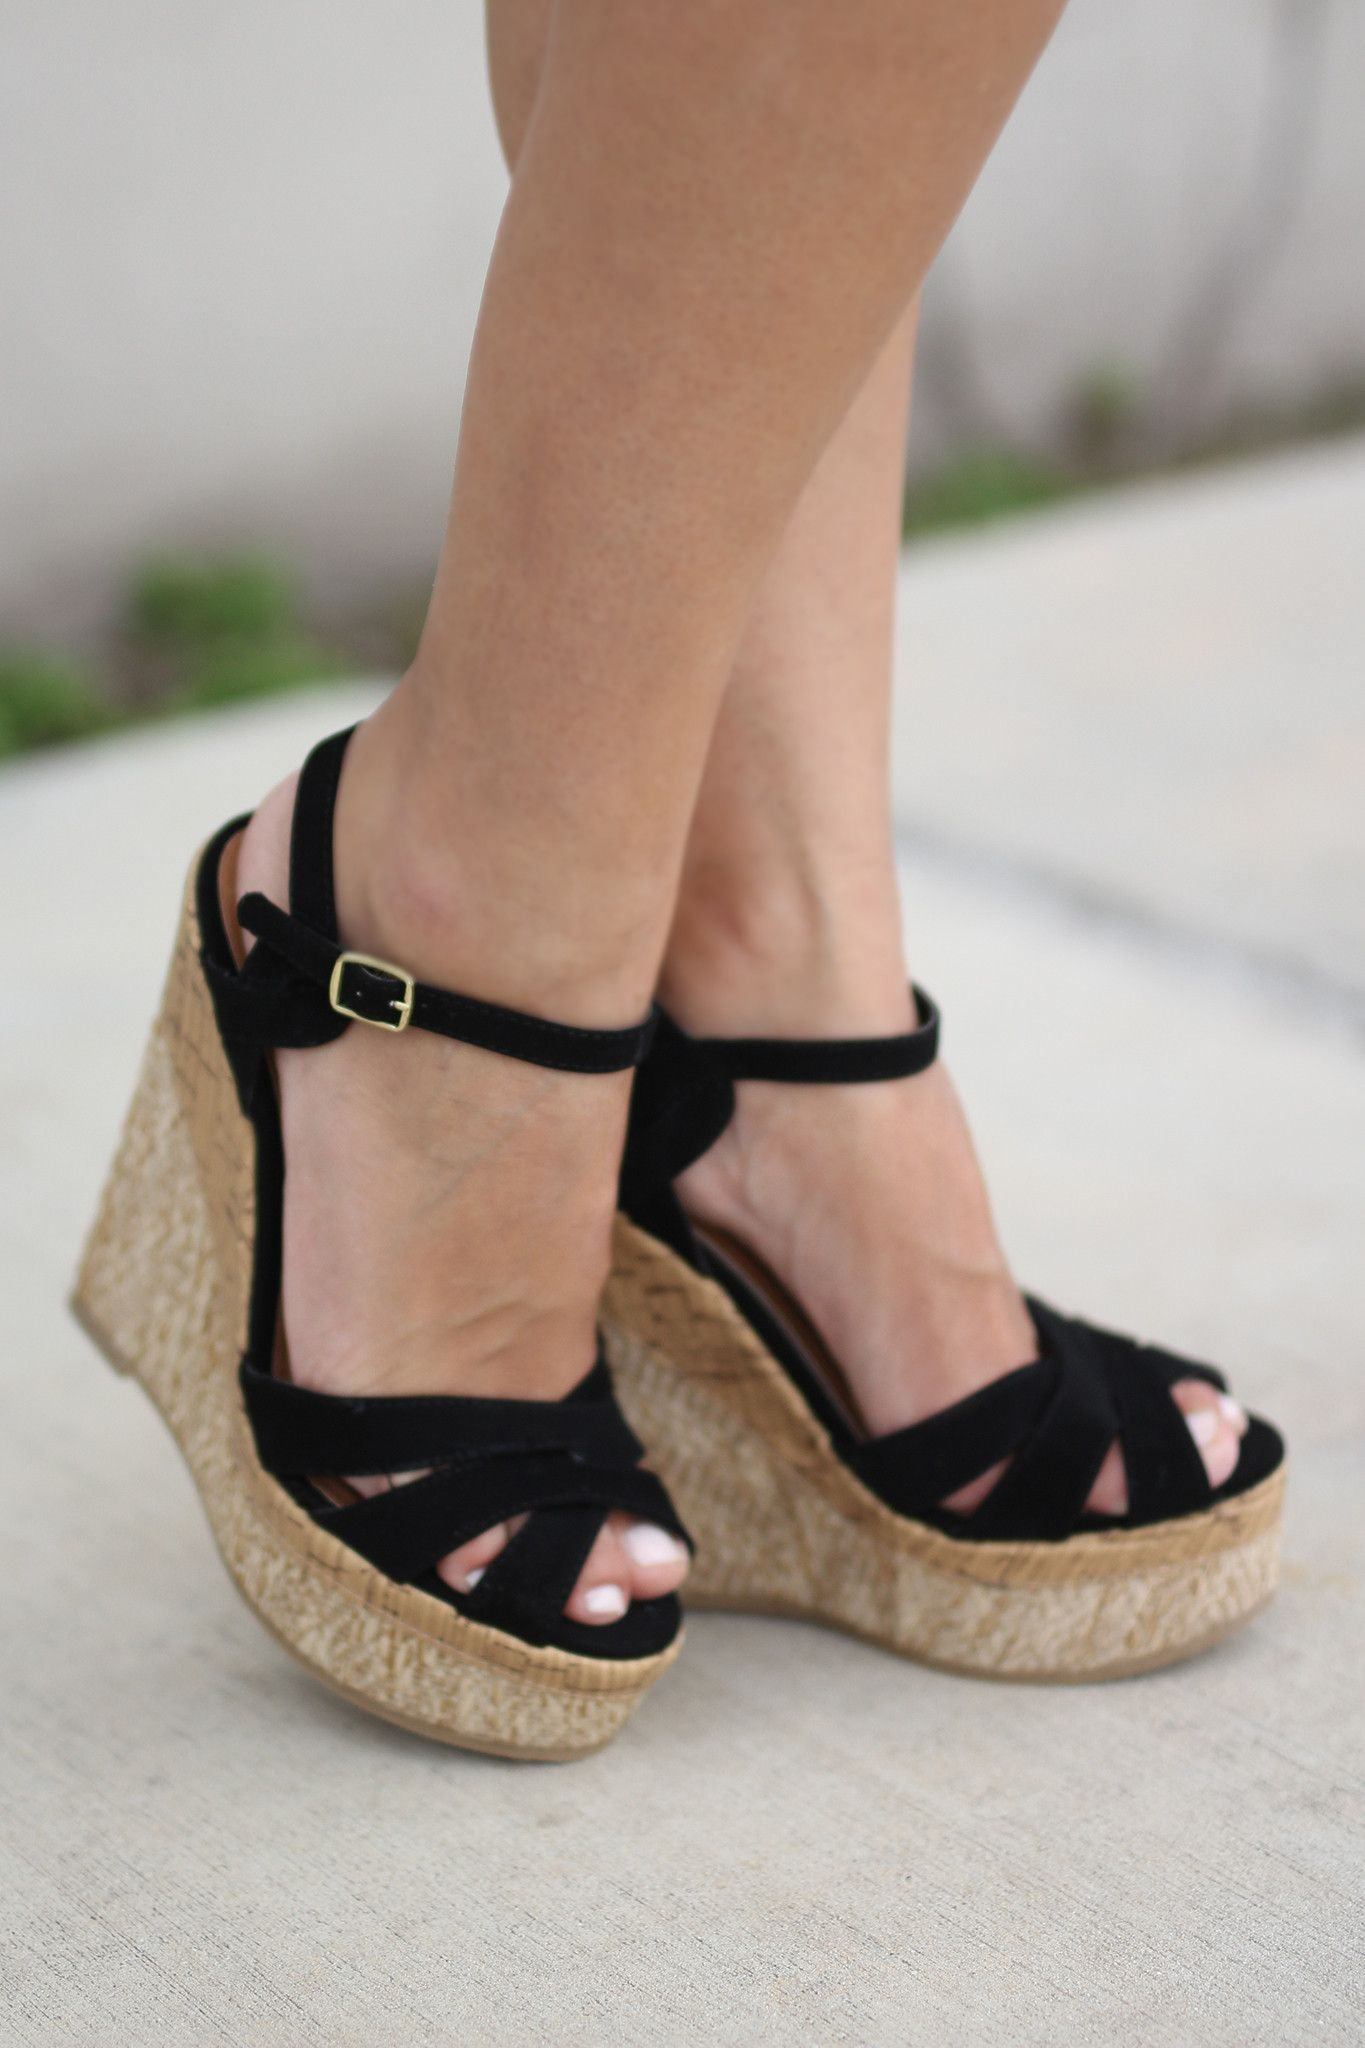 4fa0e9acfcd Summer means more wedges! The perfect summer alternative to heels!